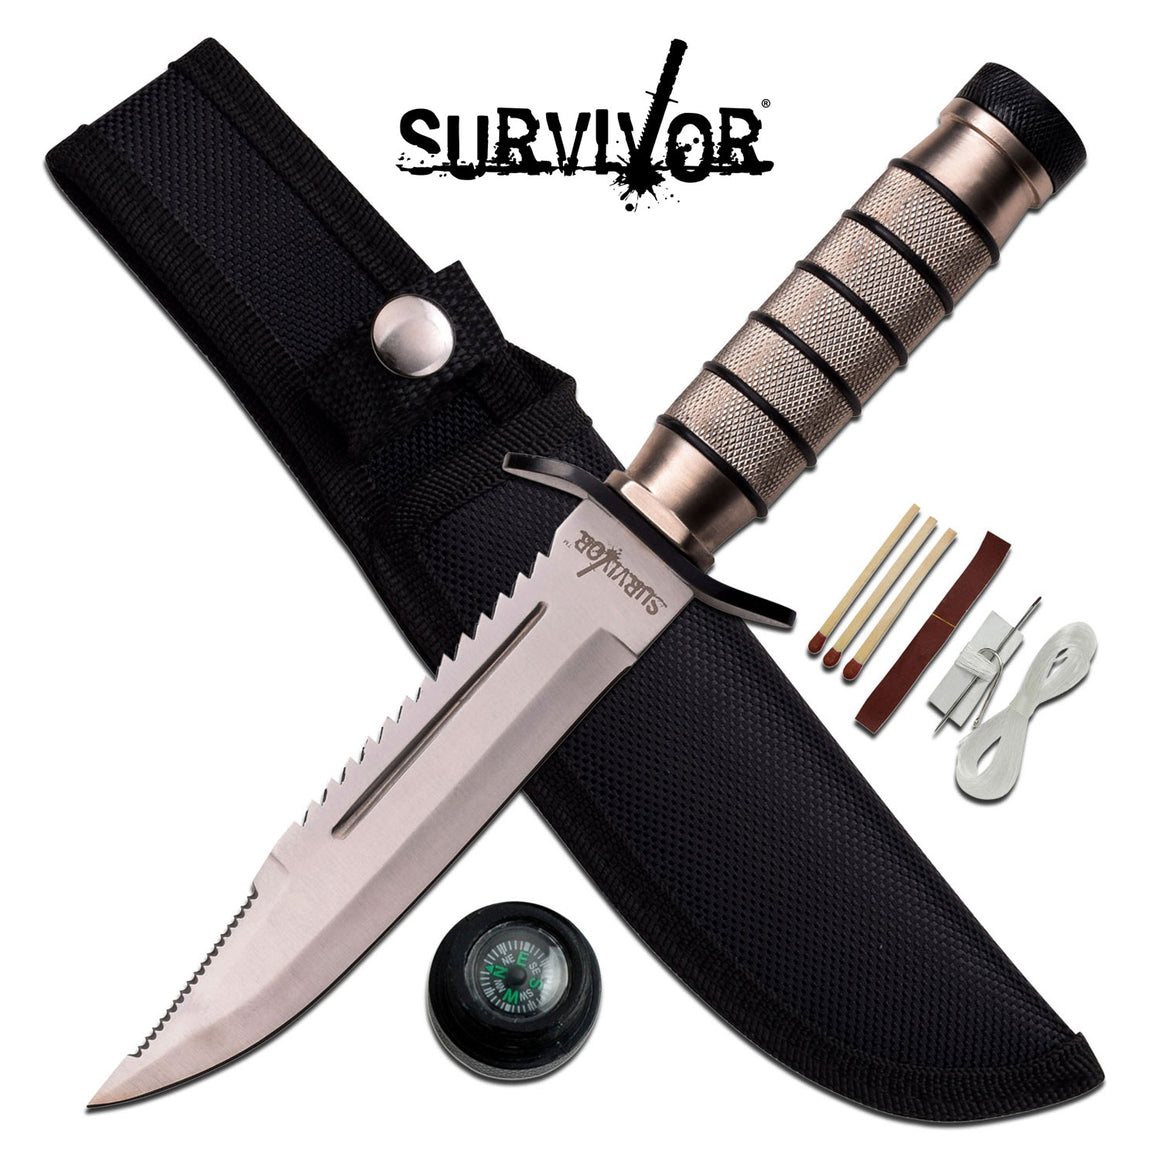 Survivor HK-695 Fixed Blade Knife